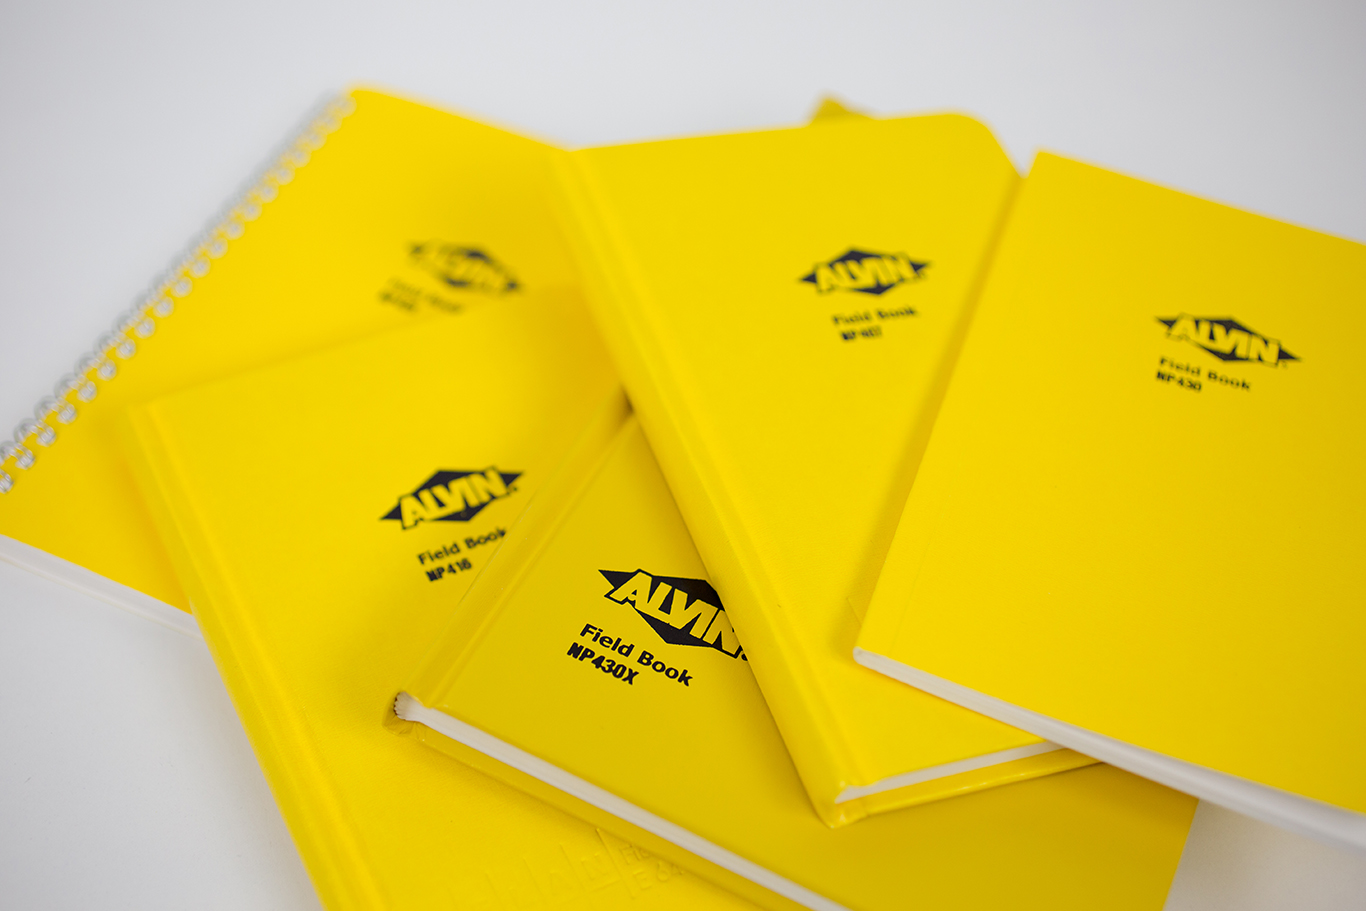 Alvin® Field Books